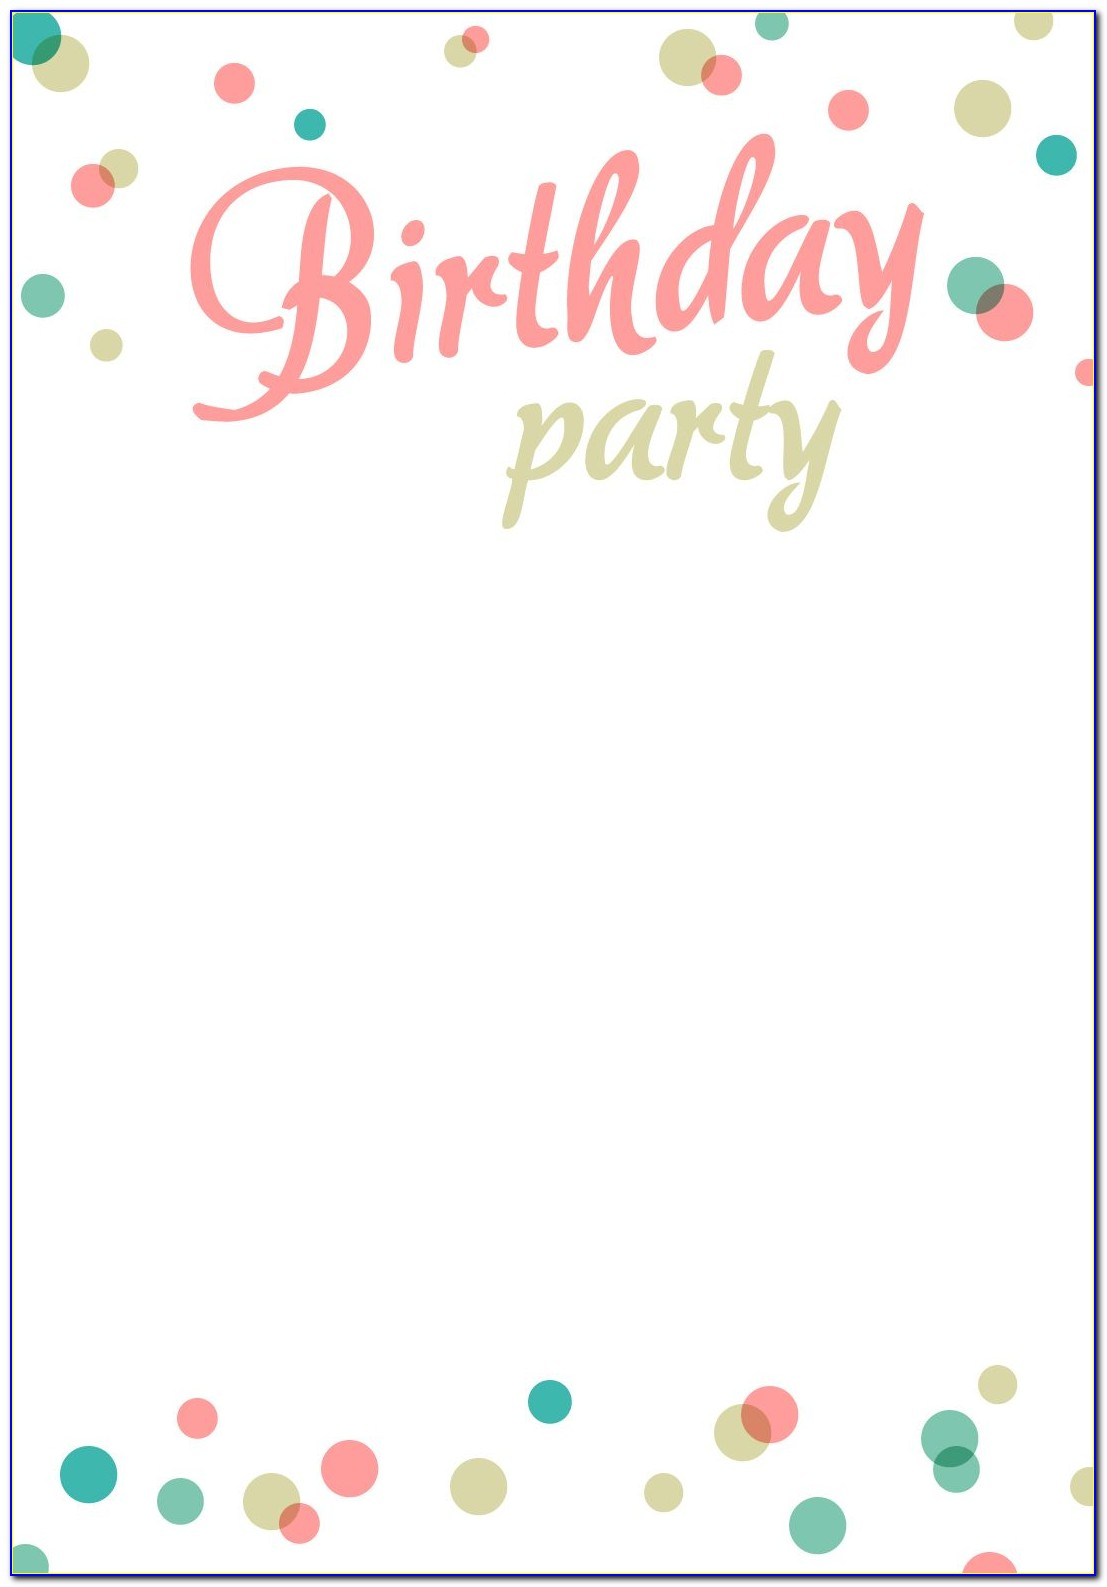 6th Birthday Party Invitation Templates